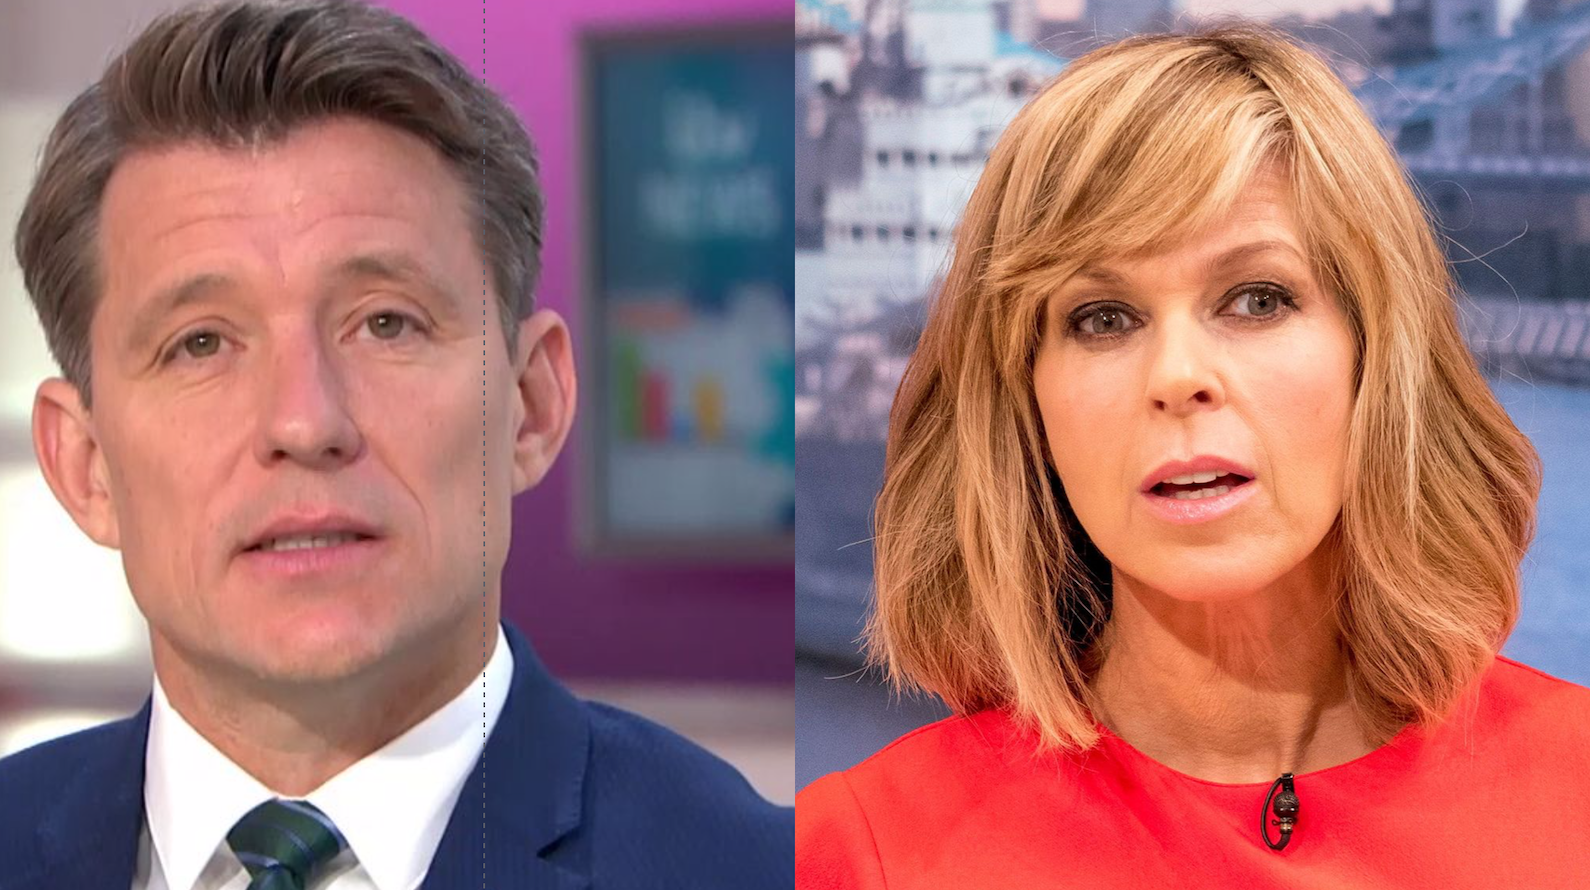 Ben Shephard gives update on Kate Garraway's husband Derek Draper to GMB fans